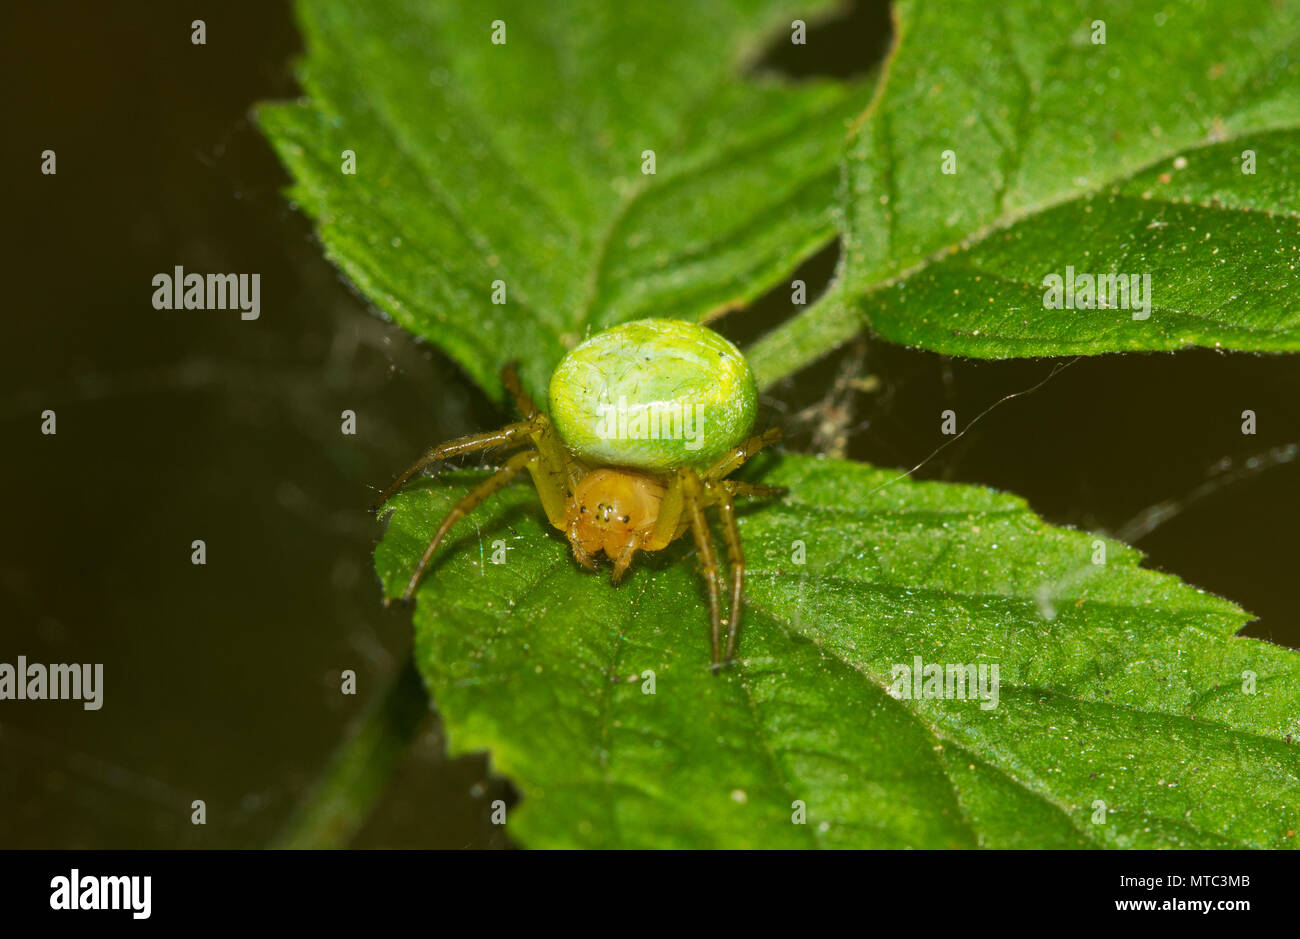 Cucumber green spider, on the leaf of a Raspberry - Stock Image